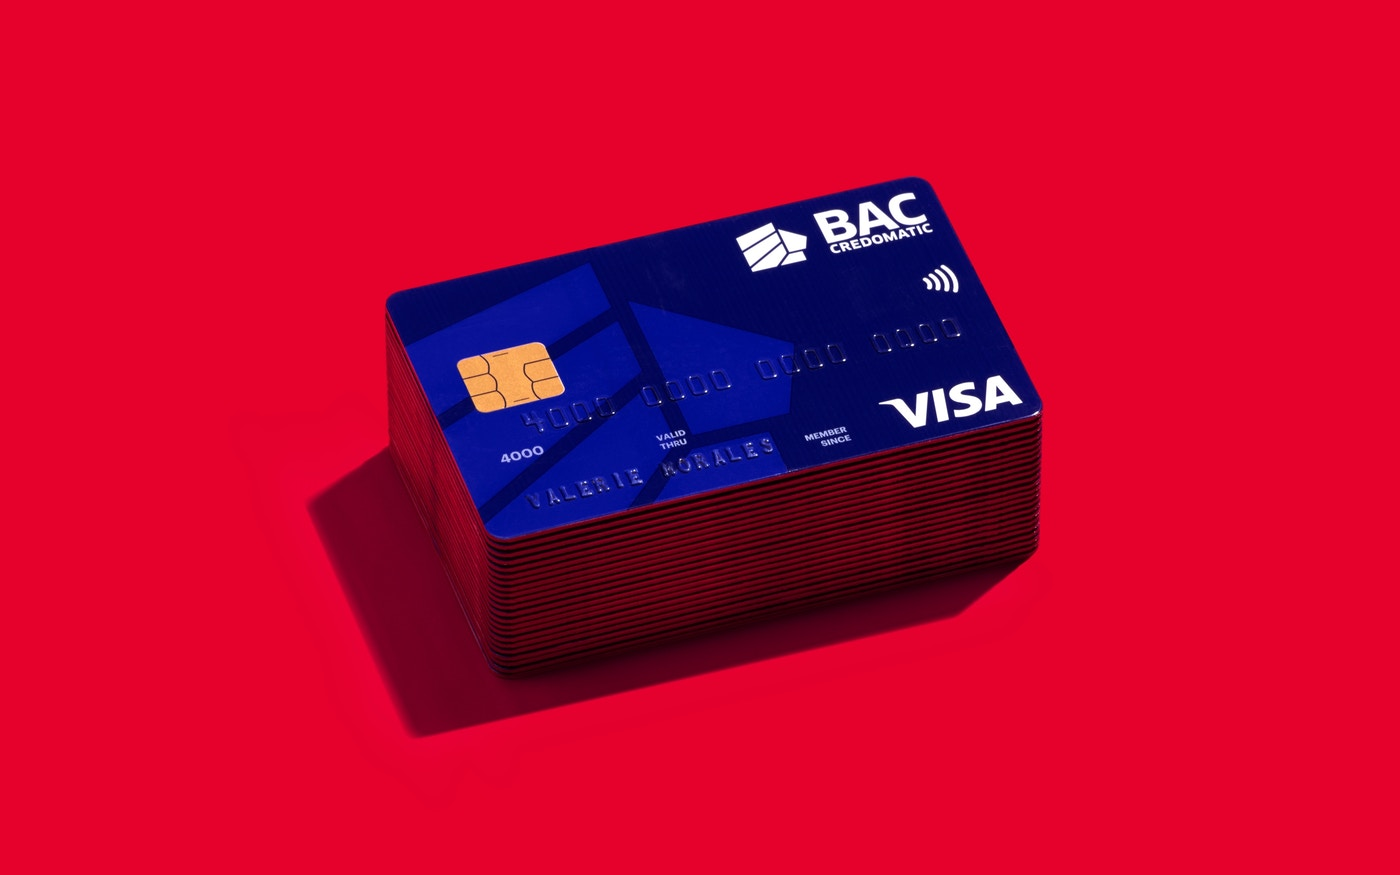 BAC Credomatic credit card design